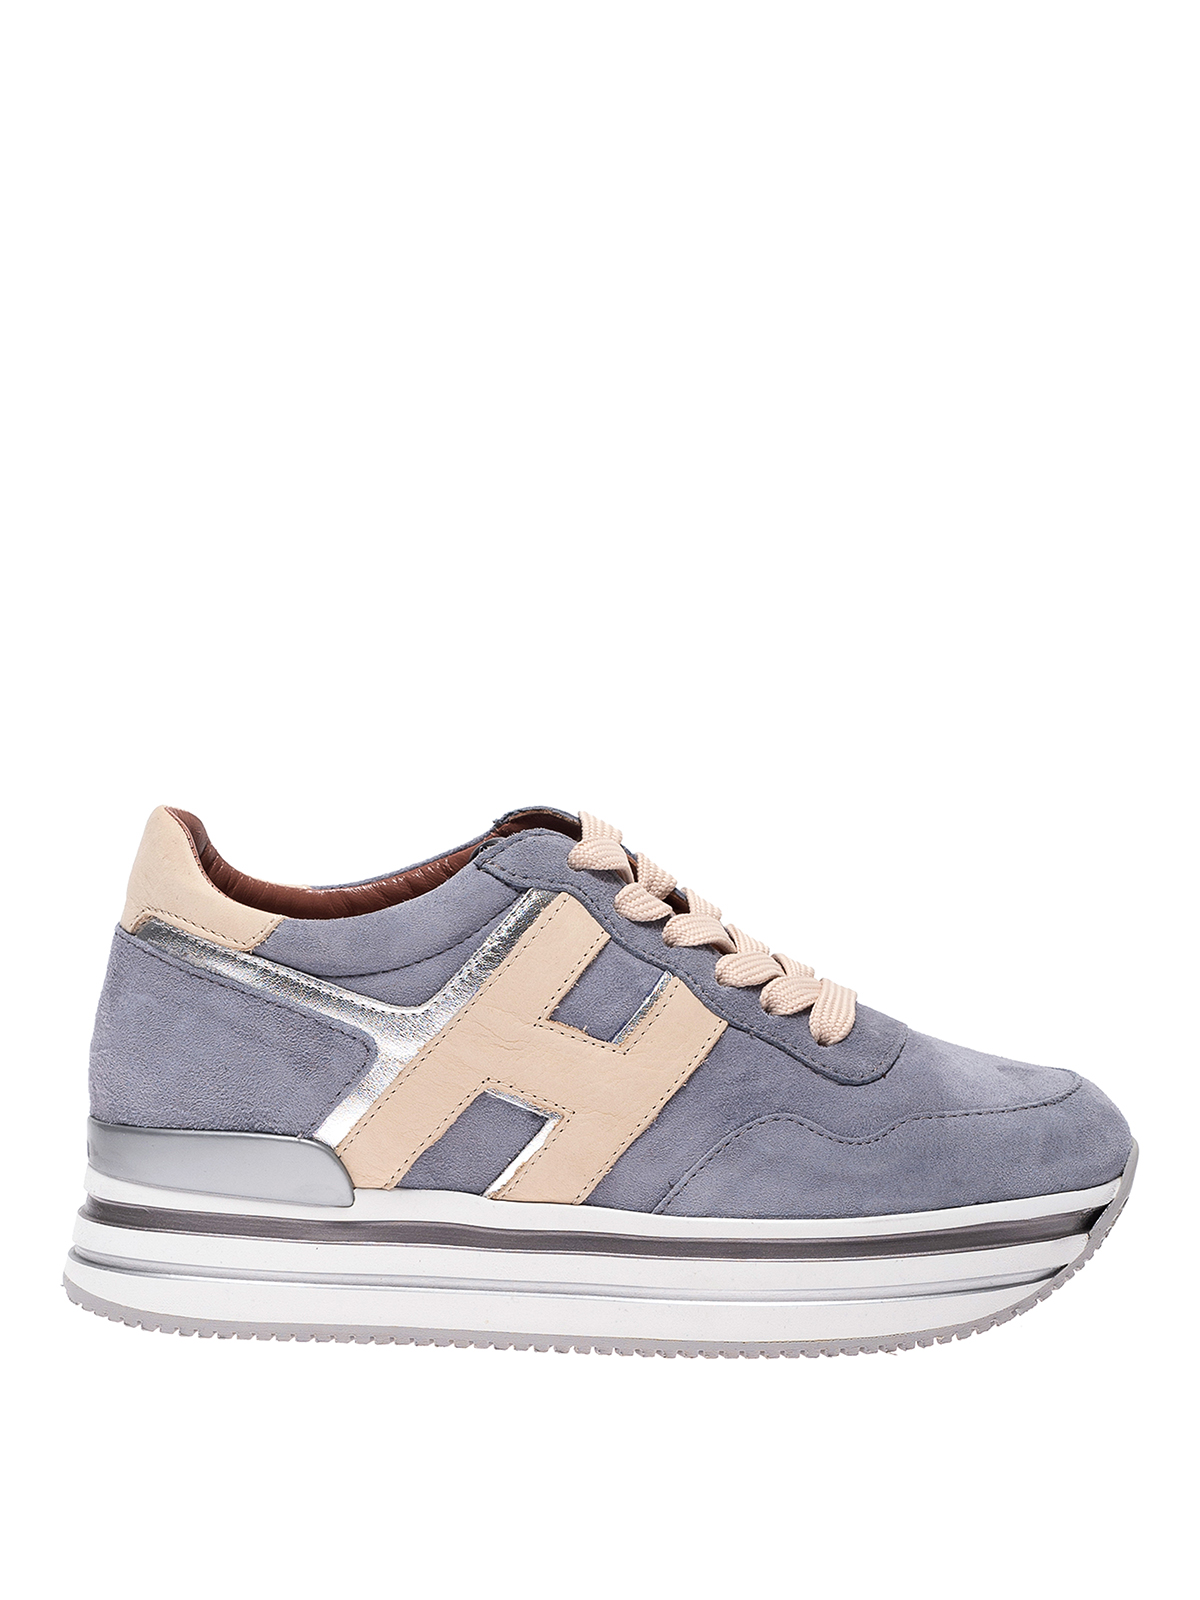 Hogan Midi Platform Nubuck Sneakers In Grey